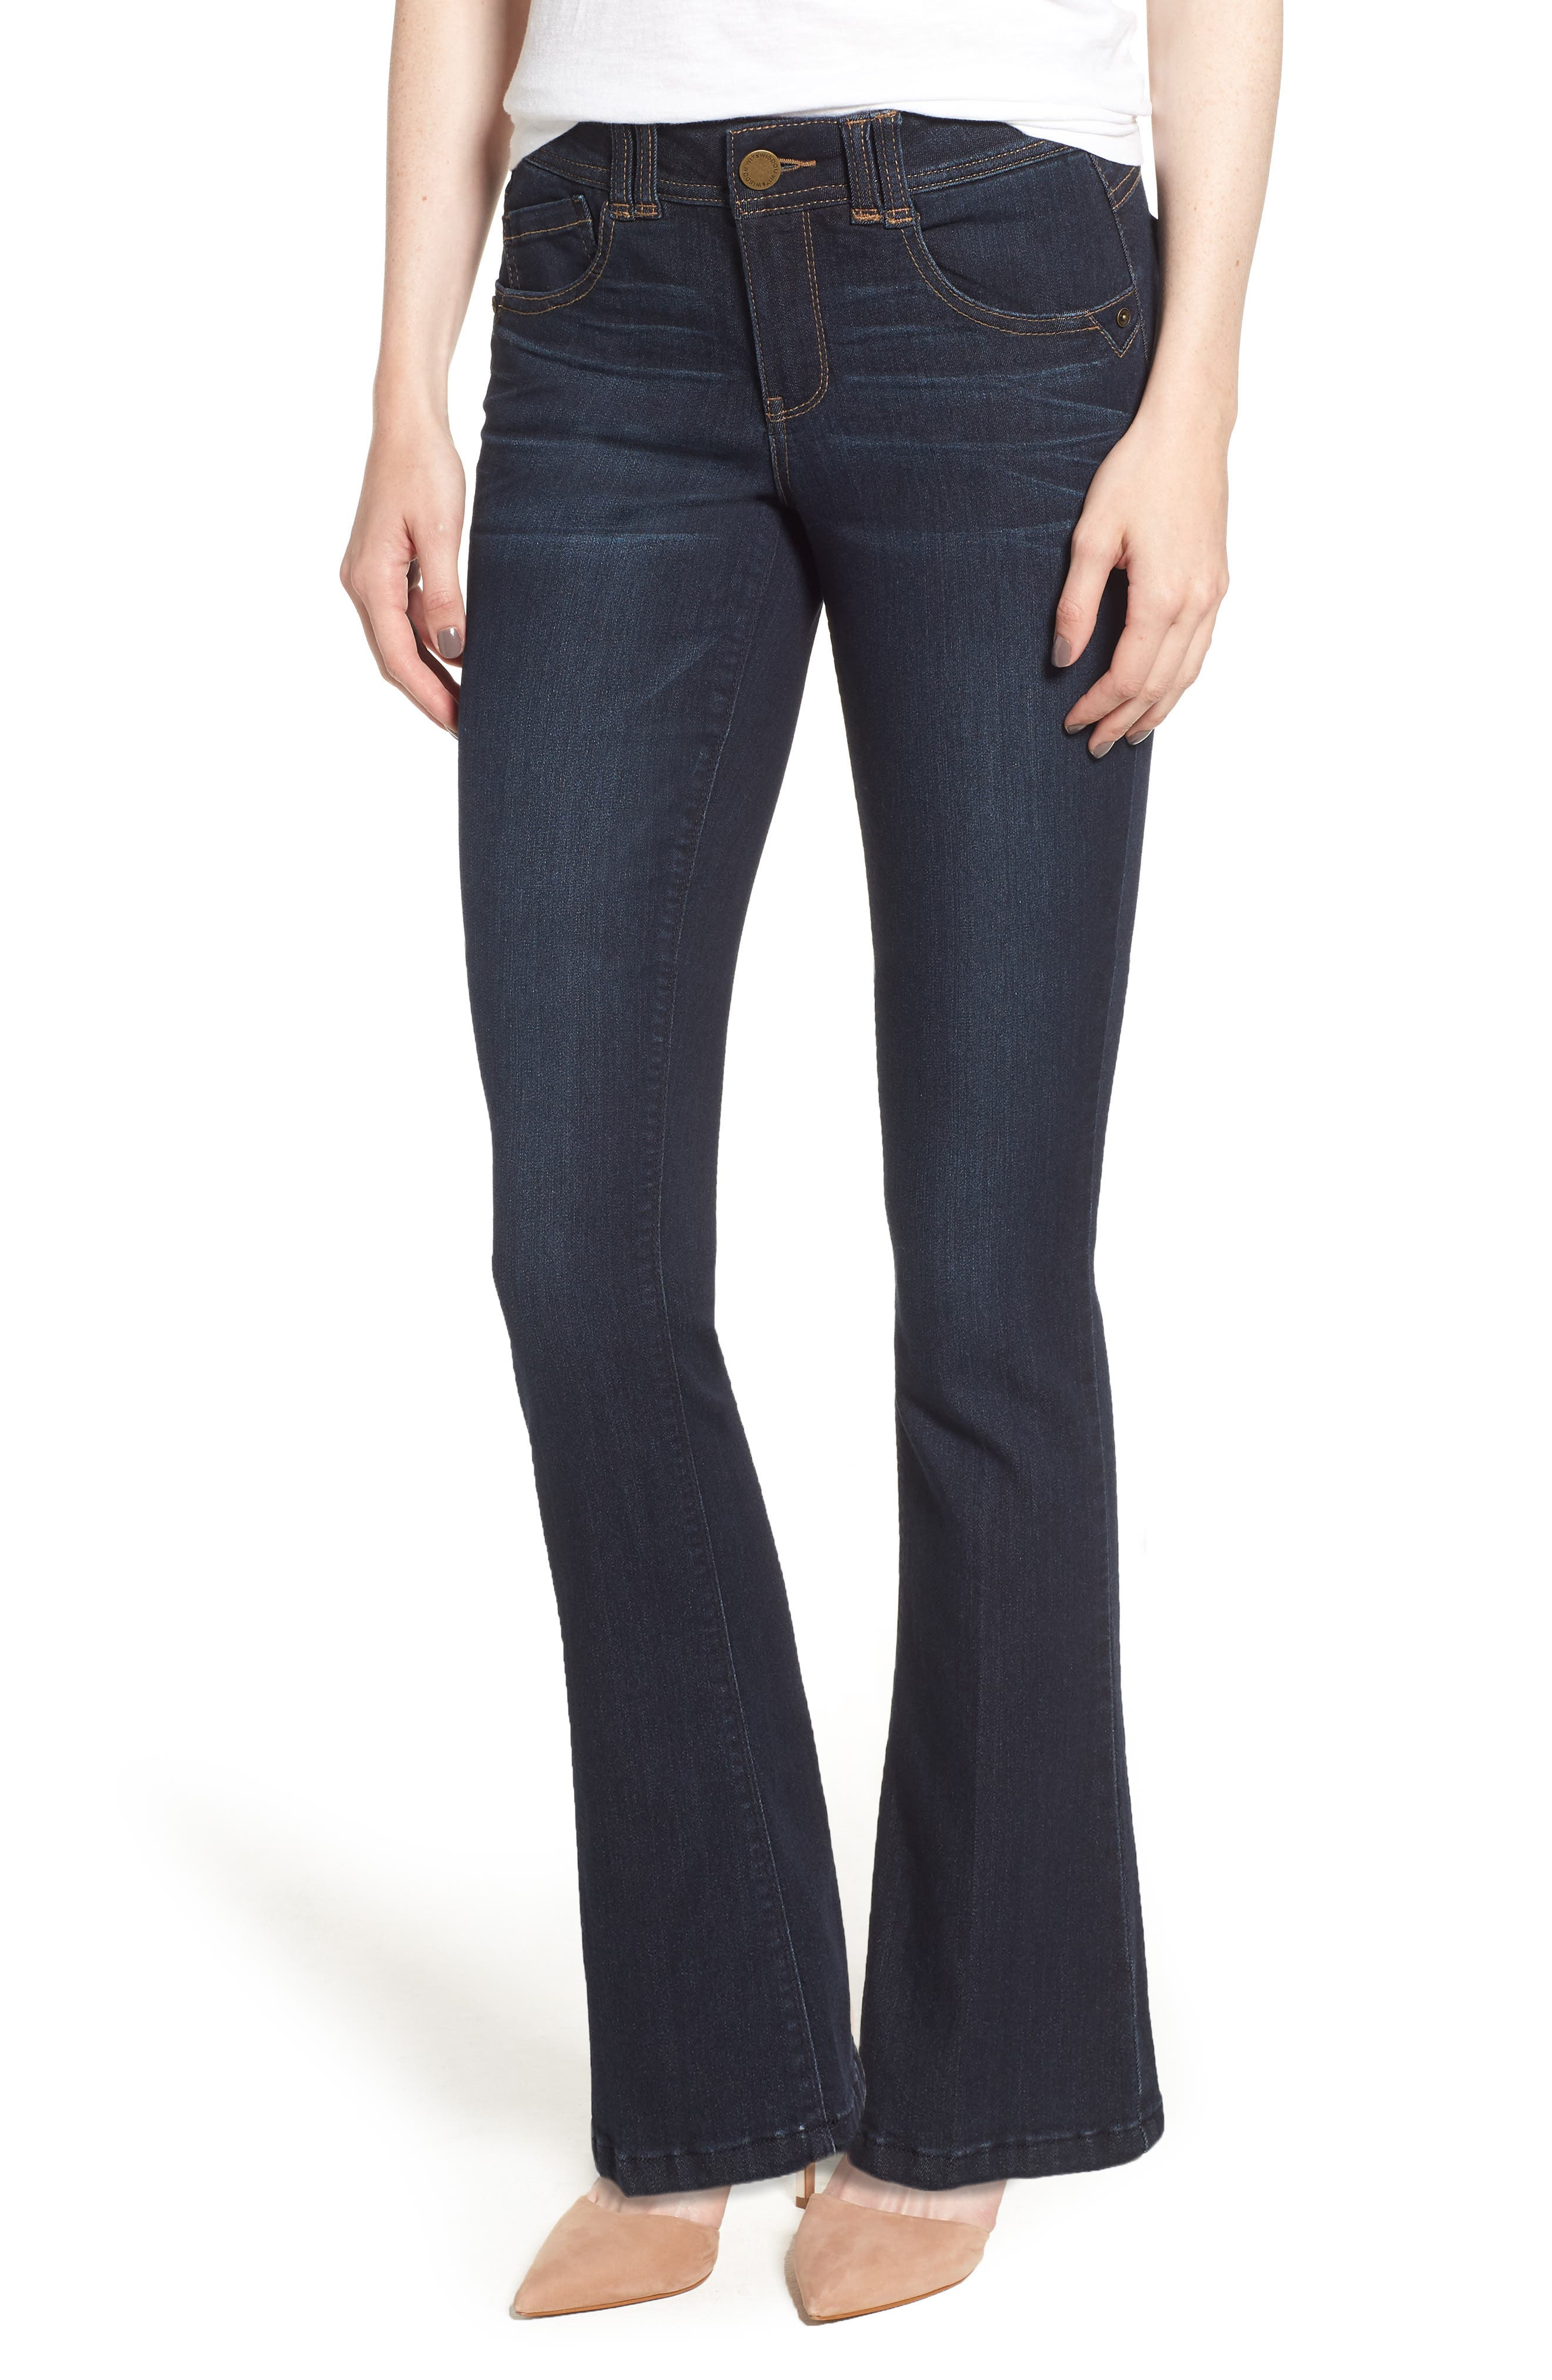 Ab-solution Itty Bitty Bootcut Jeans,                         Main,                         color, In-Indigo